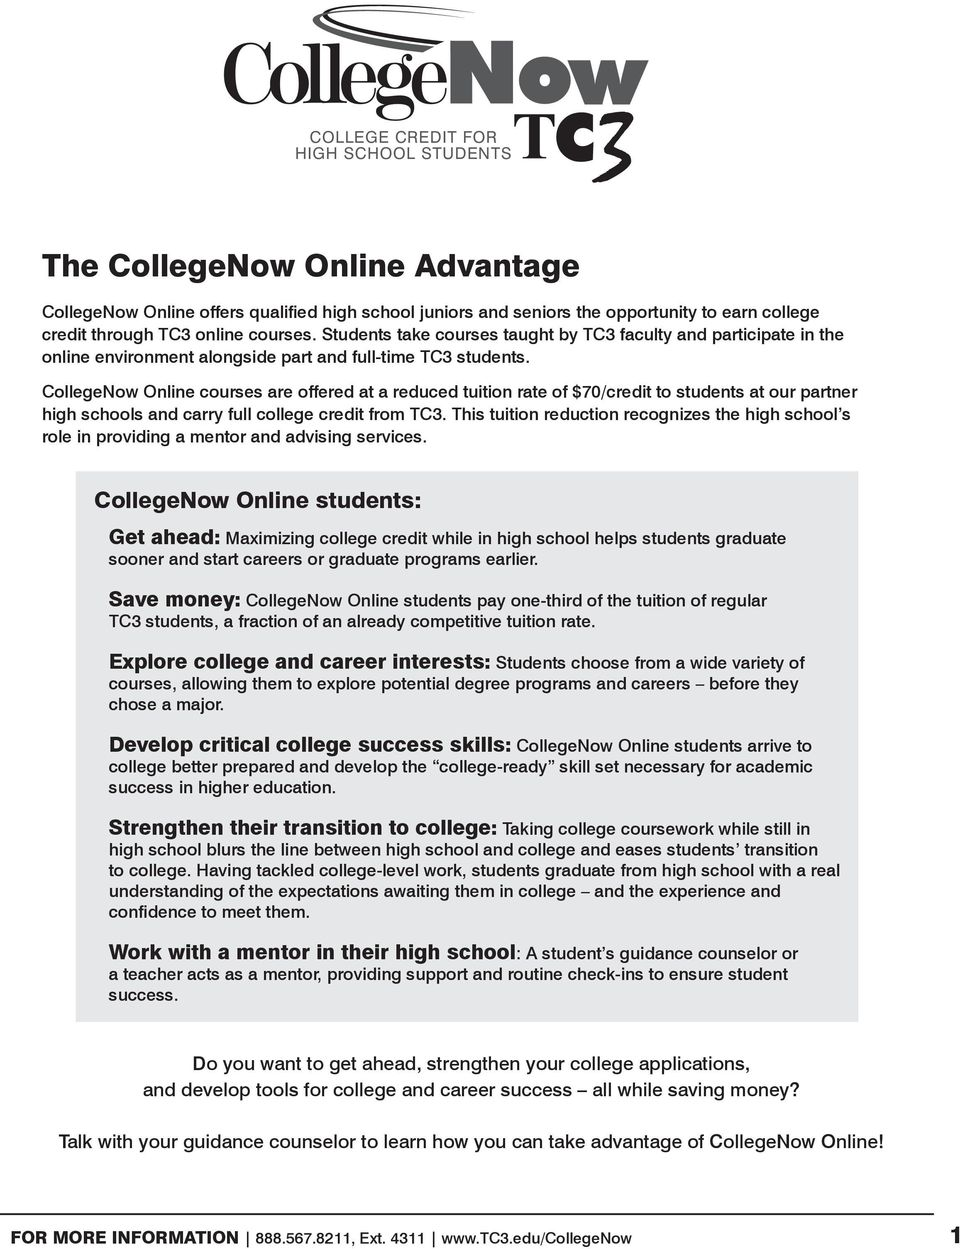 CollegeNow Online courses are offered at a reduced tuition rate of $70/credit to students at our partner high schools and carry full college credit from TC3.